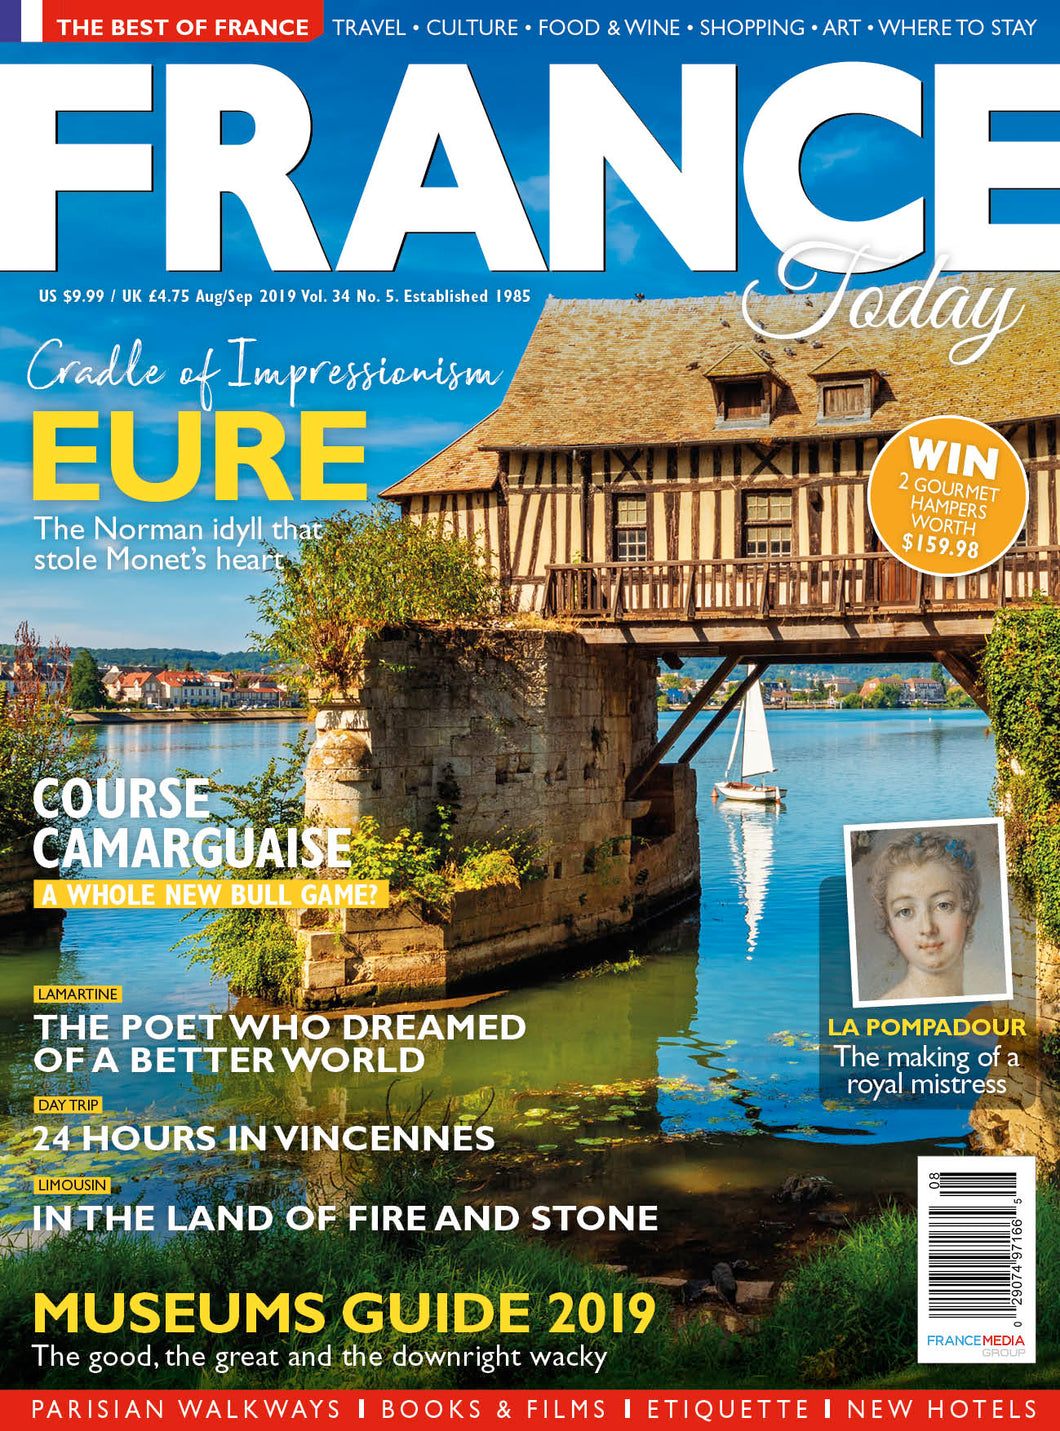 Issue 175 (Aug/Sep 2019)